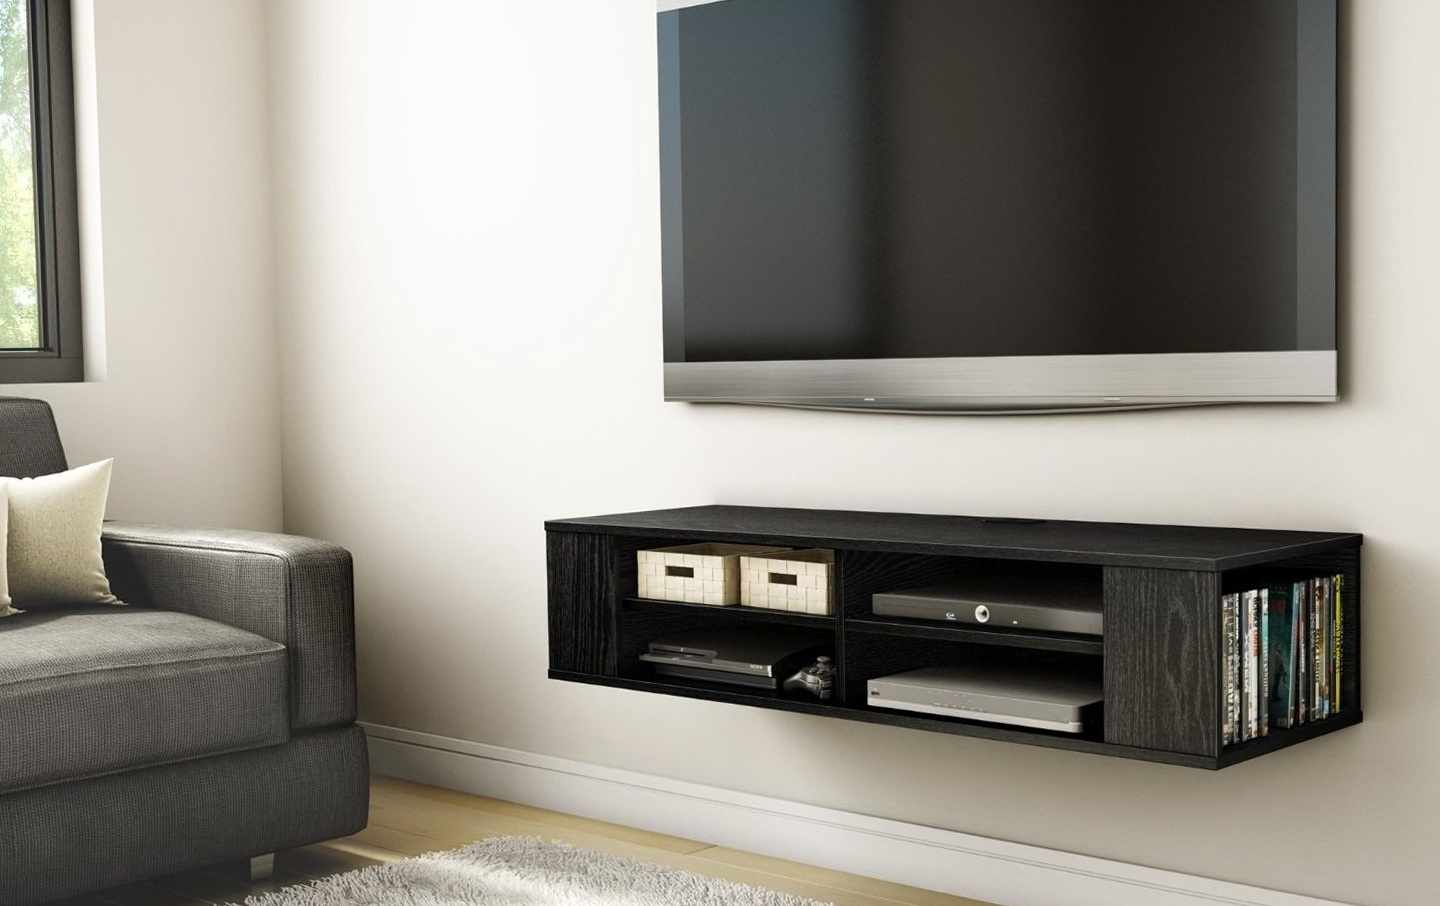 Wall Mount Tv Shelf India